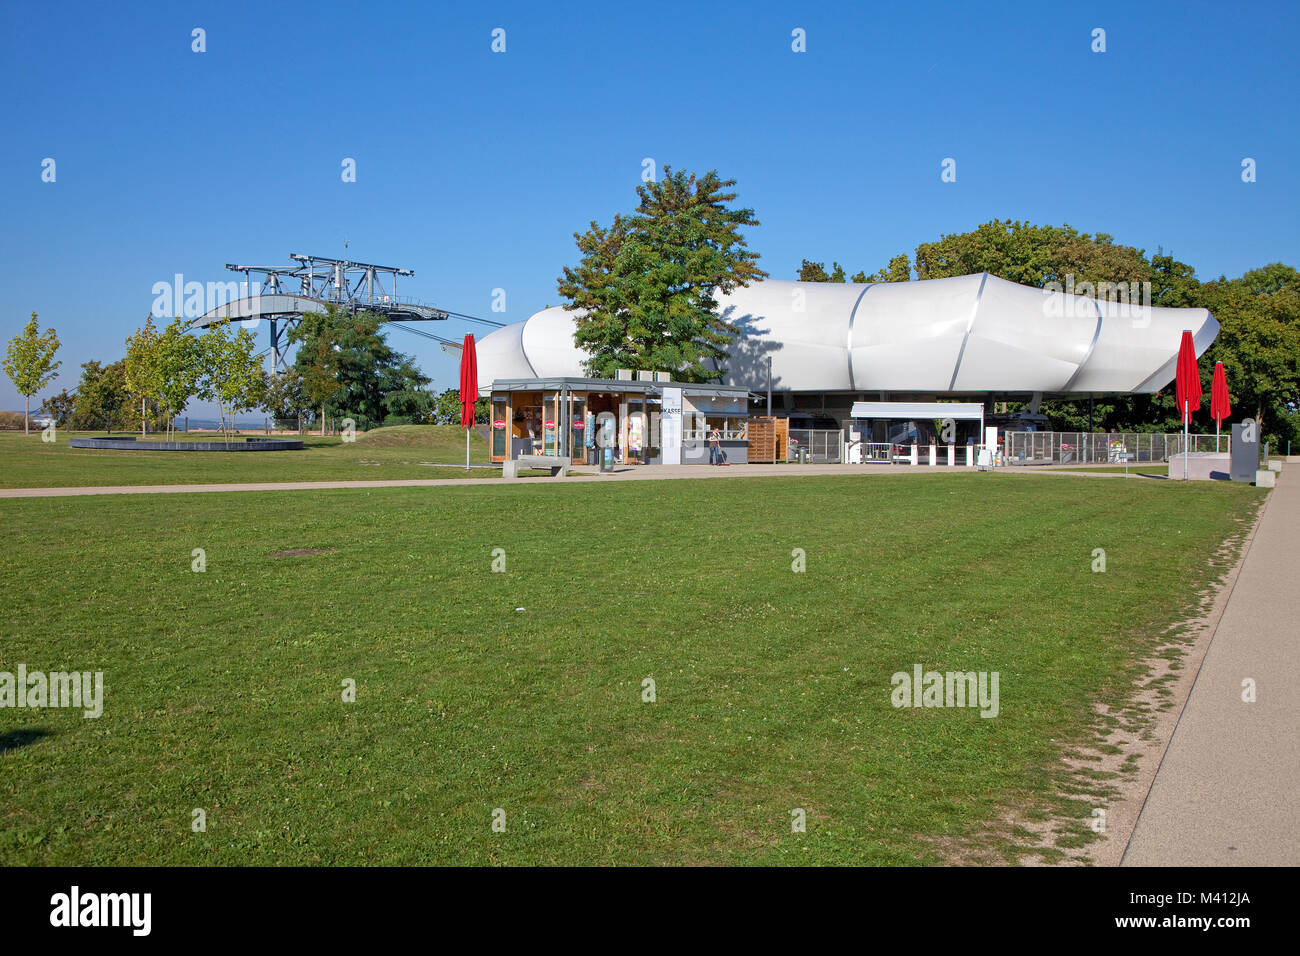 Cable car station at fortress Ehrenbreitstein, Coblenz, Rhineland-Palatinate, Germany, Europe - Stock Image